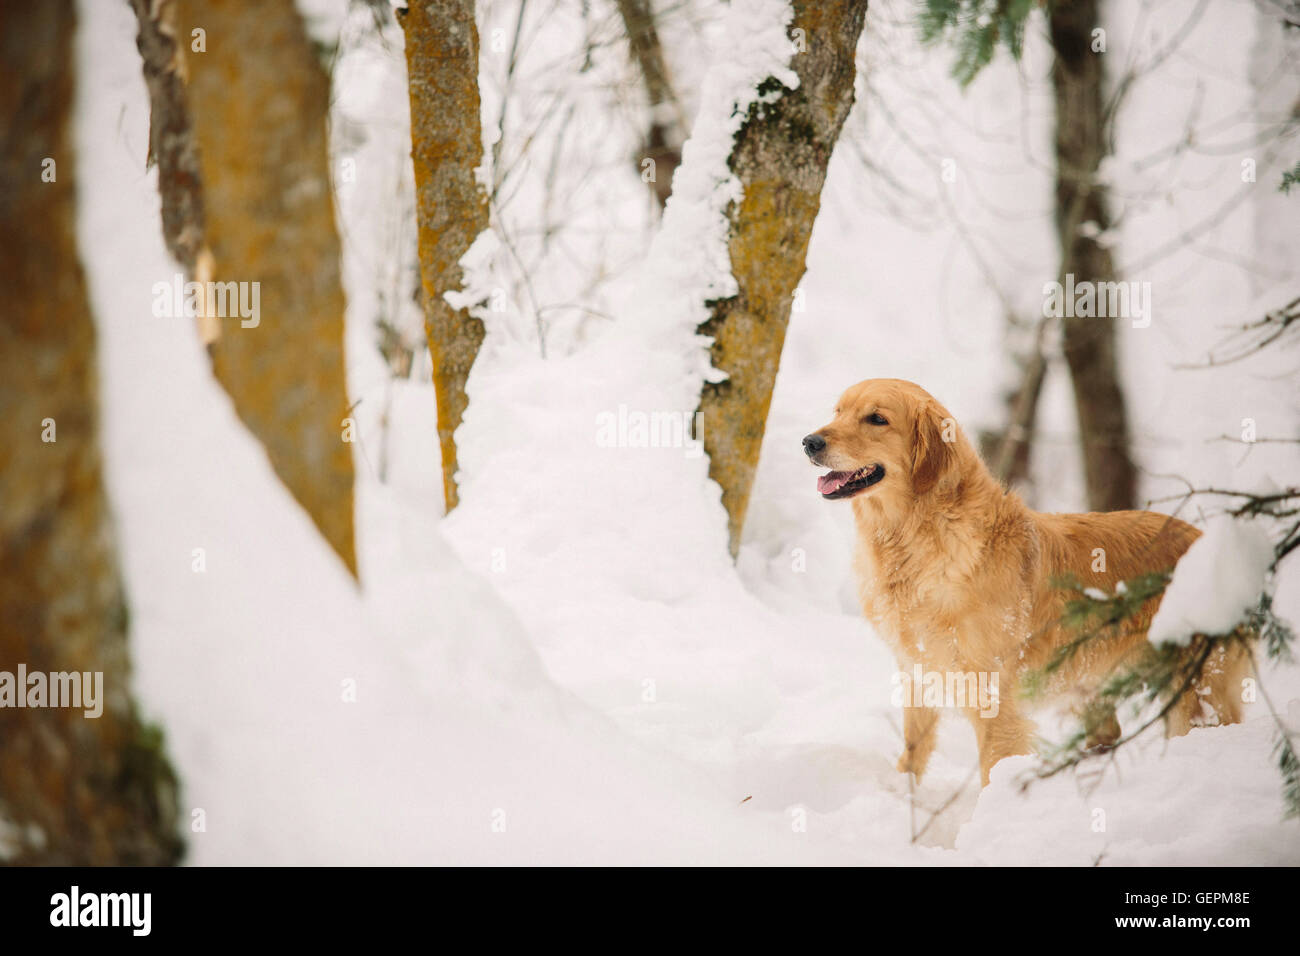 A golden retriever dog in a snowy woodland. - Stock Image